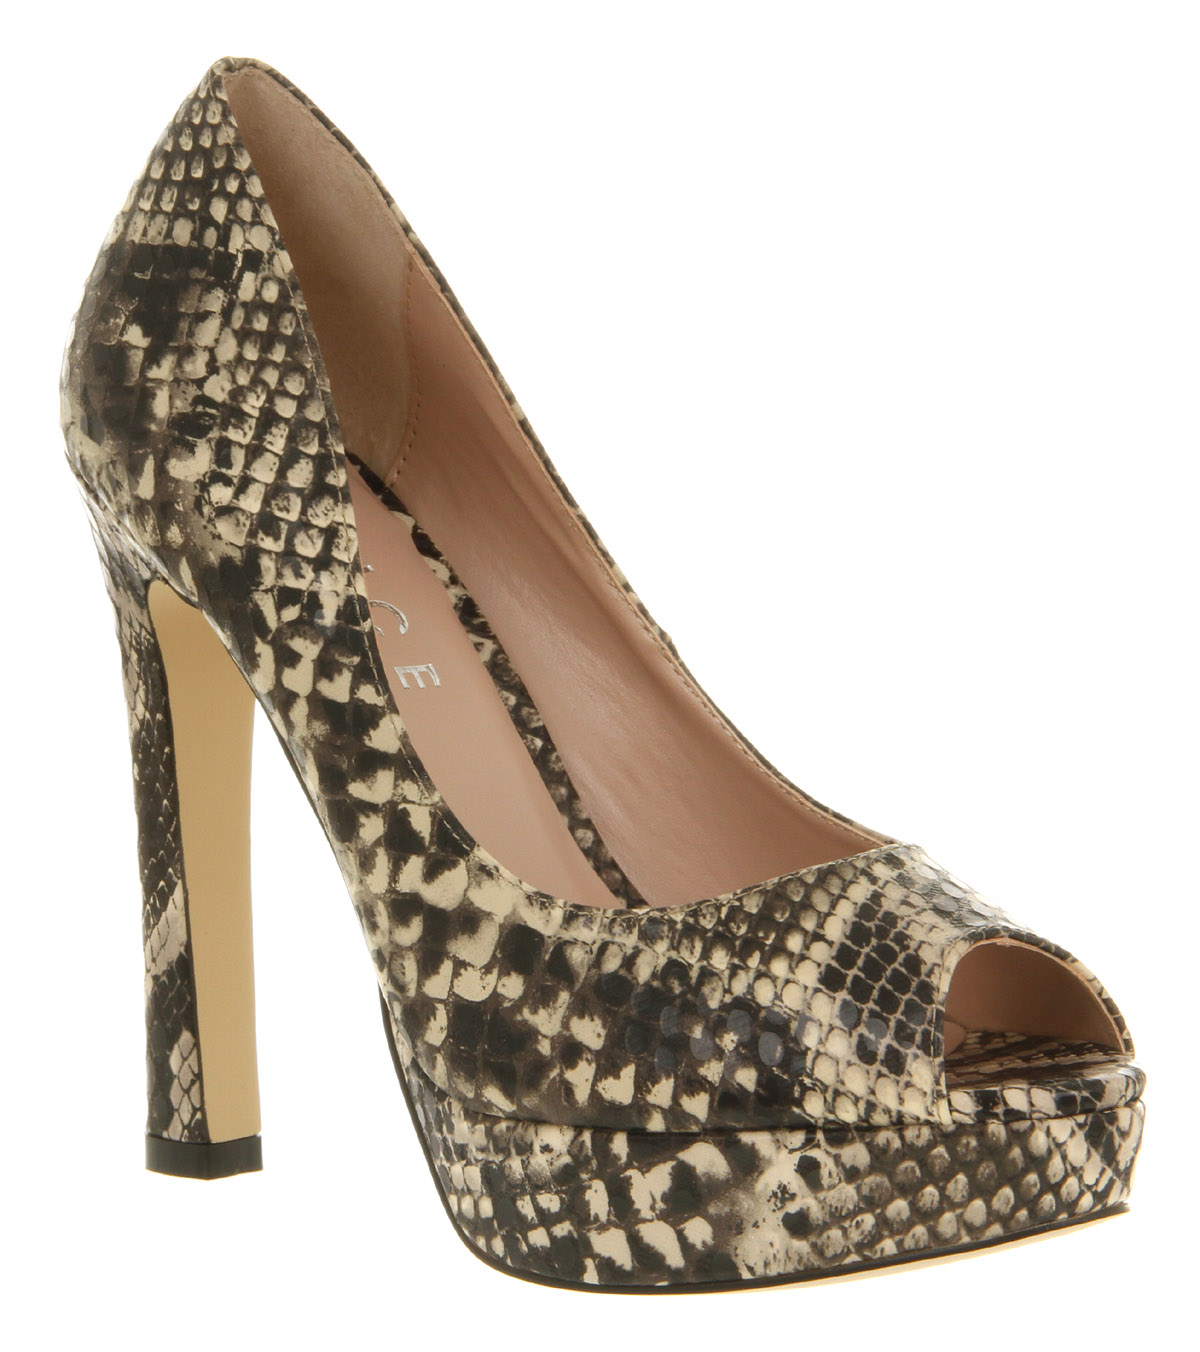 Womens-Office-Kourt-Shoe-Taupe-Snake-Pu-Heels-Shoes